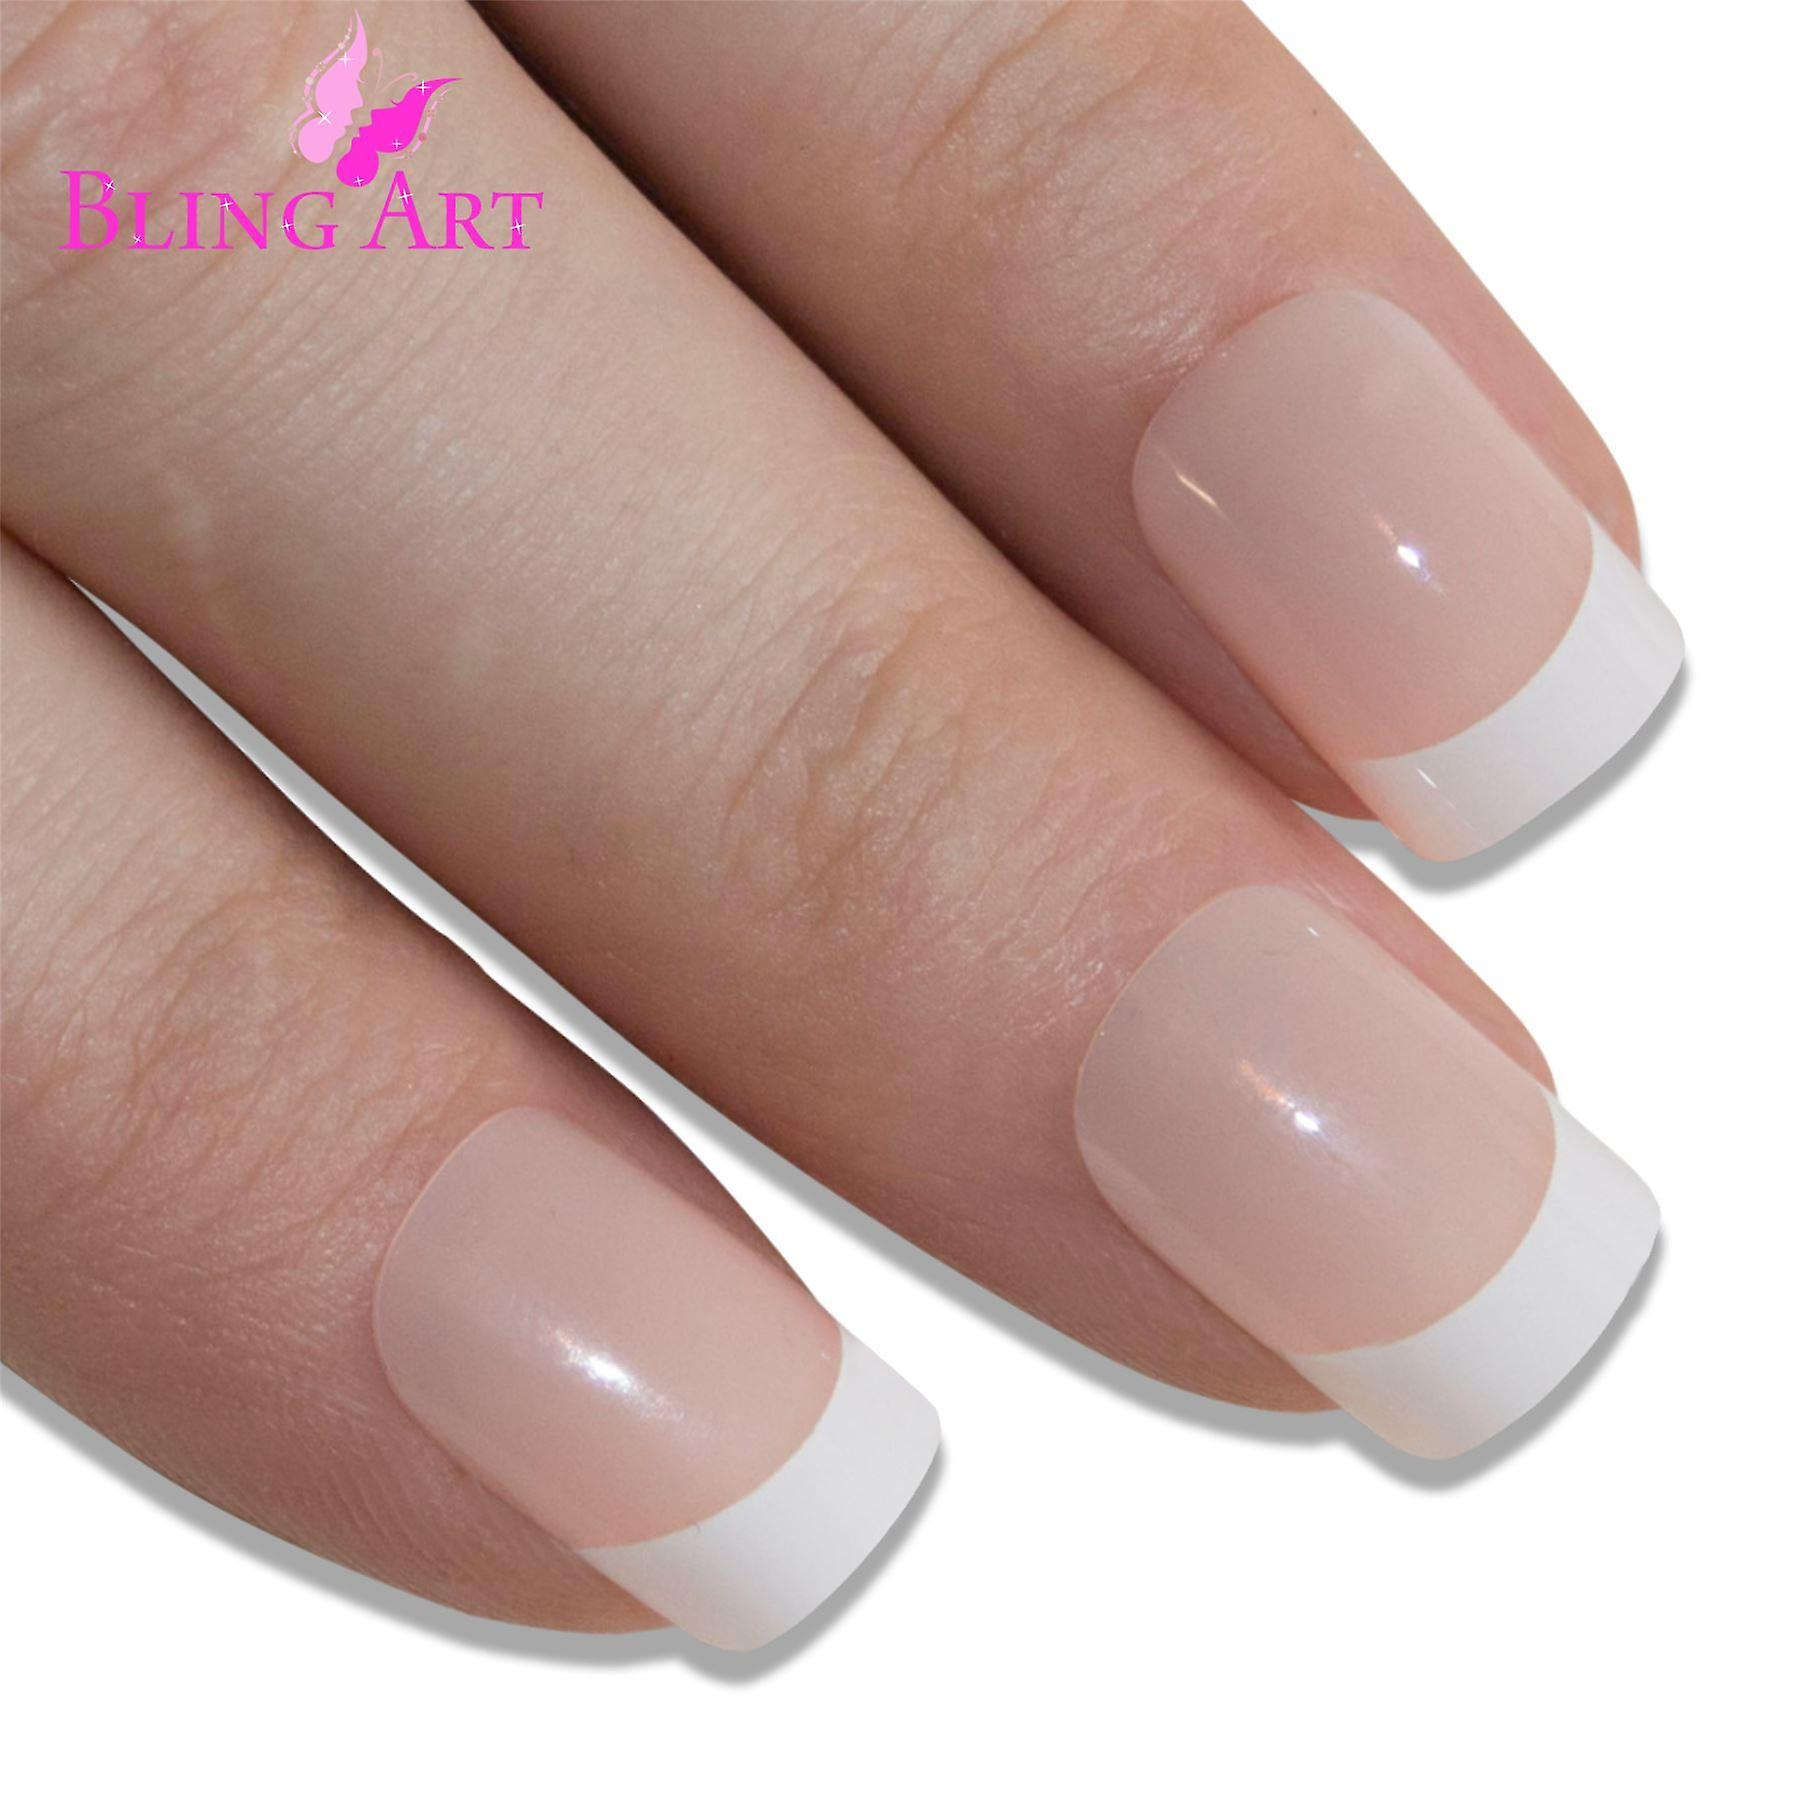 False nails by bling art white french manicure fake medium tips with glue